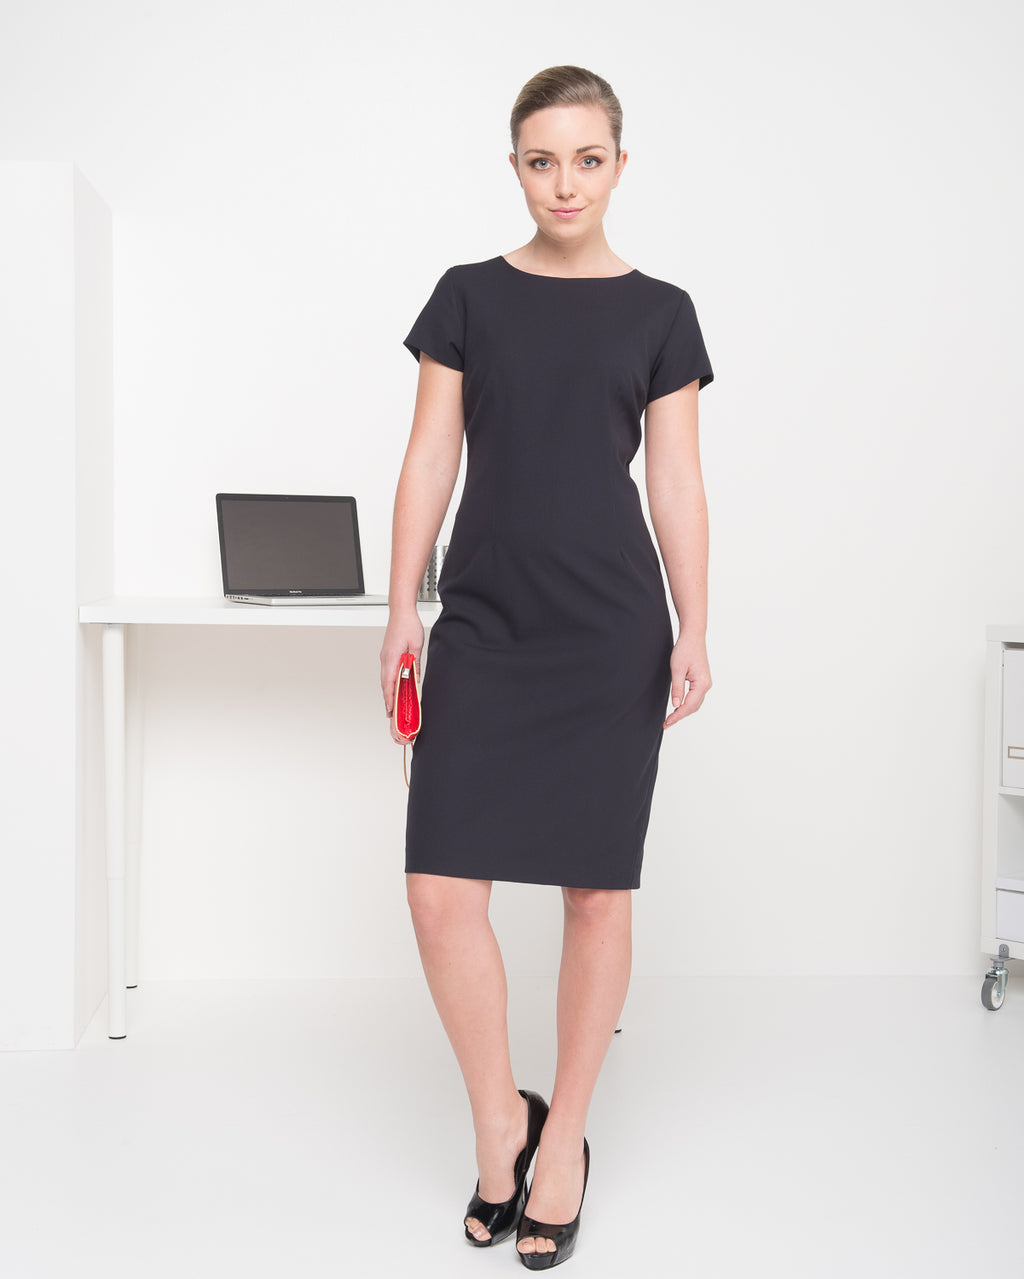 420-MF-NVY: Cap sleeve semi fitted dress